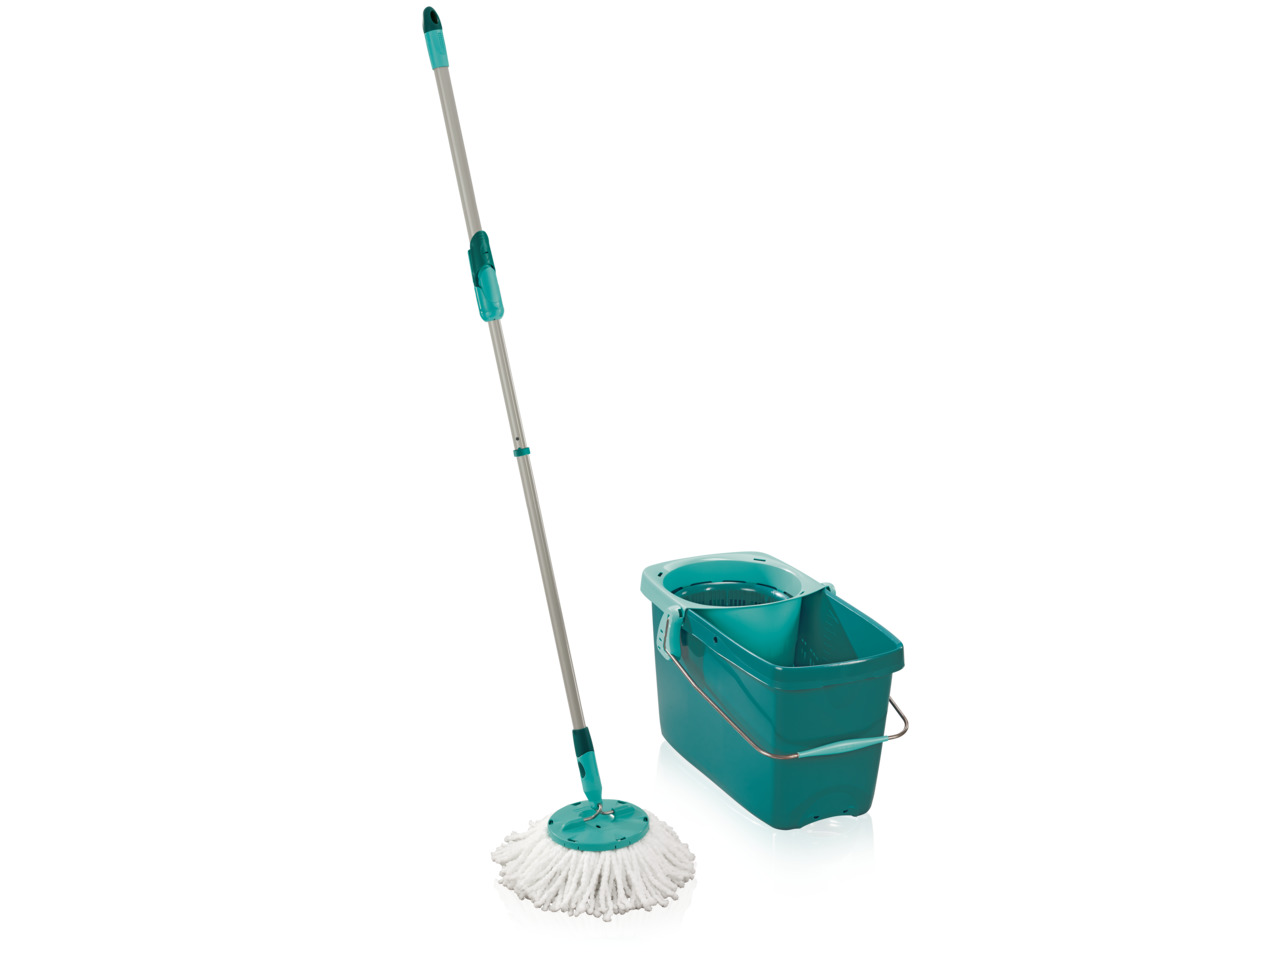 Leifheit Clean Twist Mop System